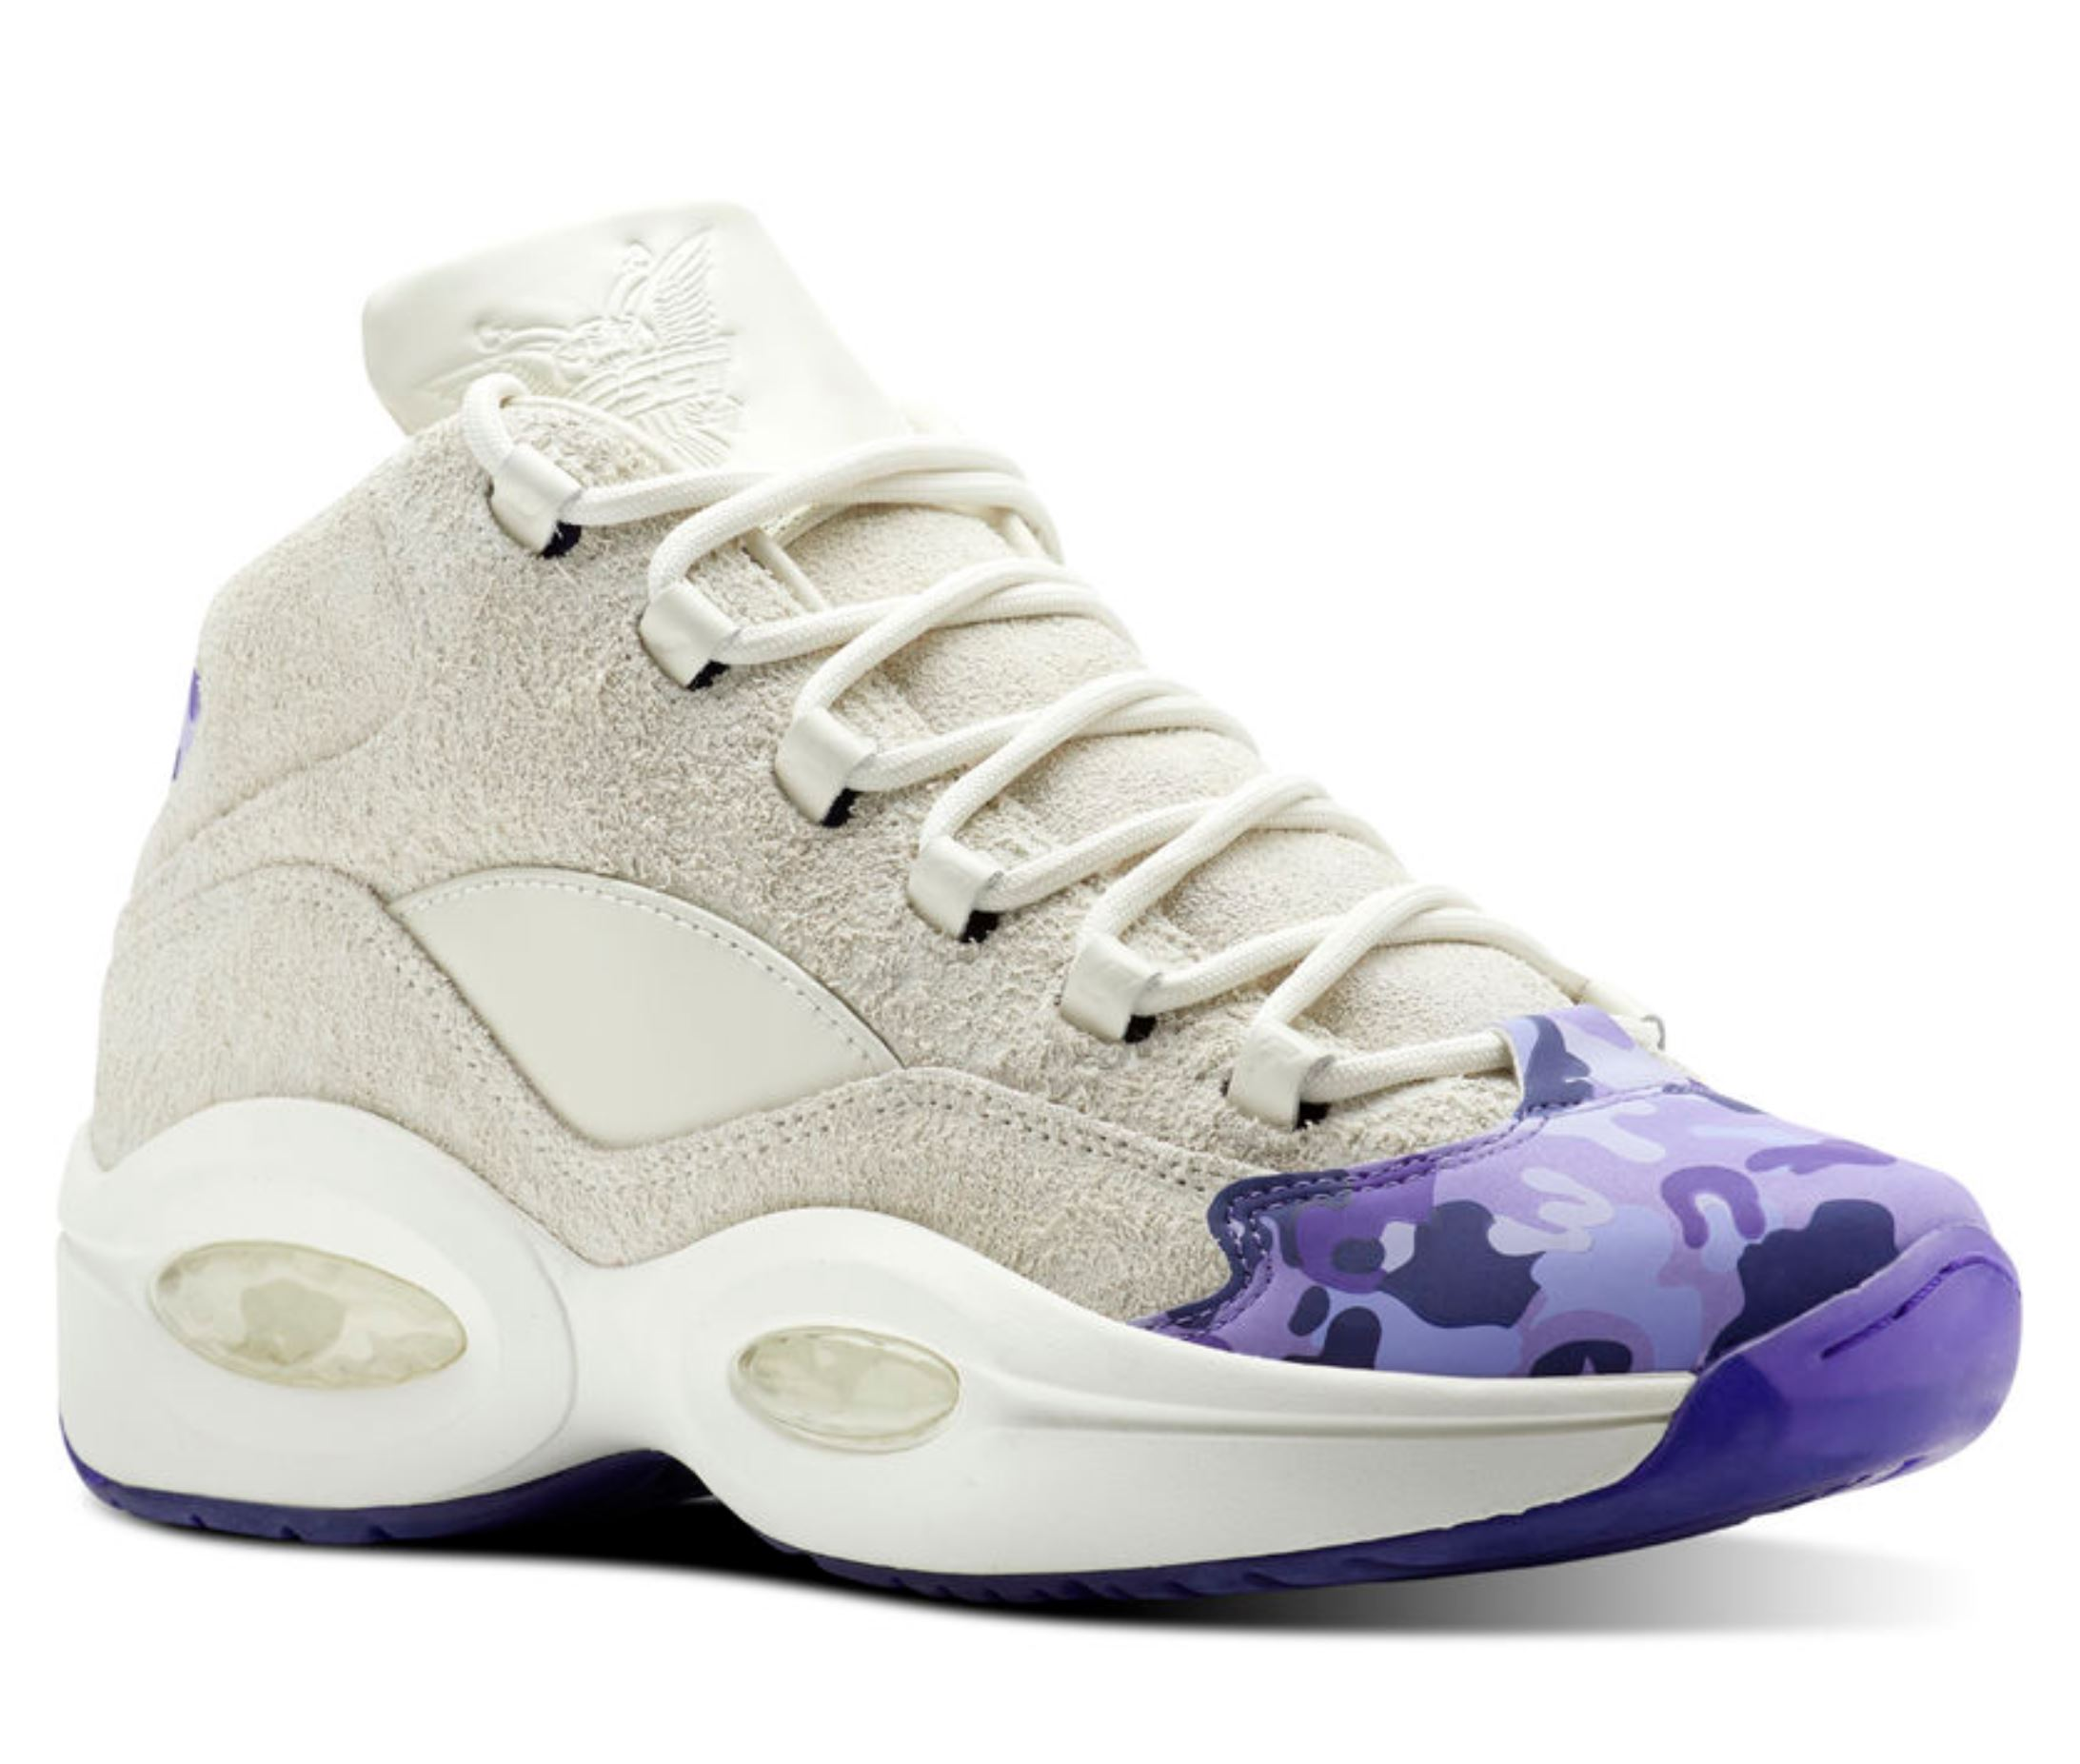 reebok question camron designer chris hill weartesters